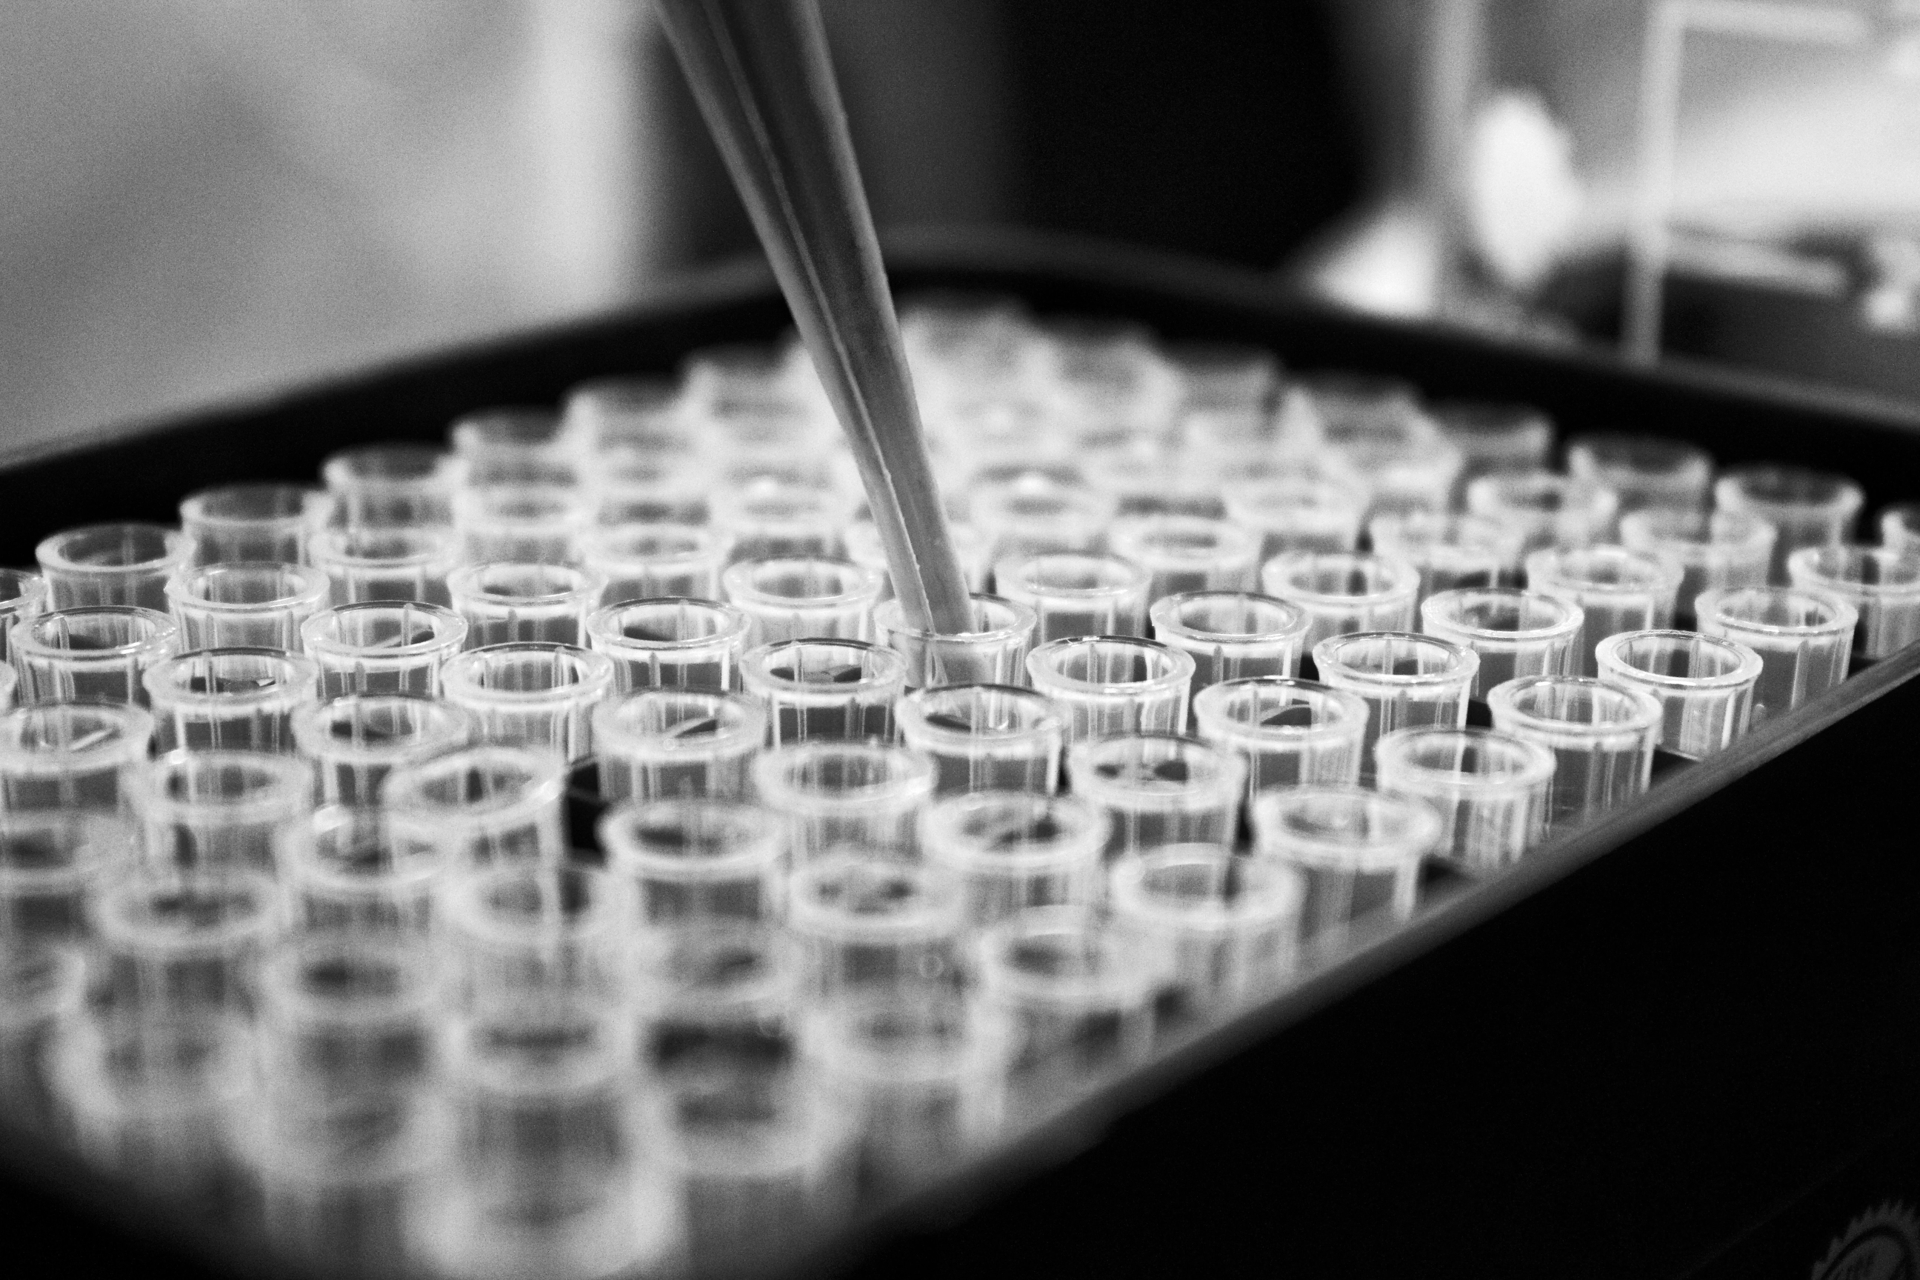 A pipette dipping into test tubes in close-up